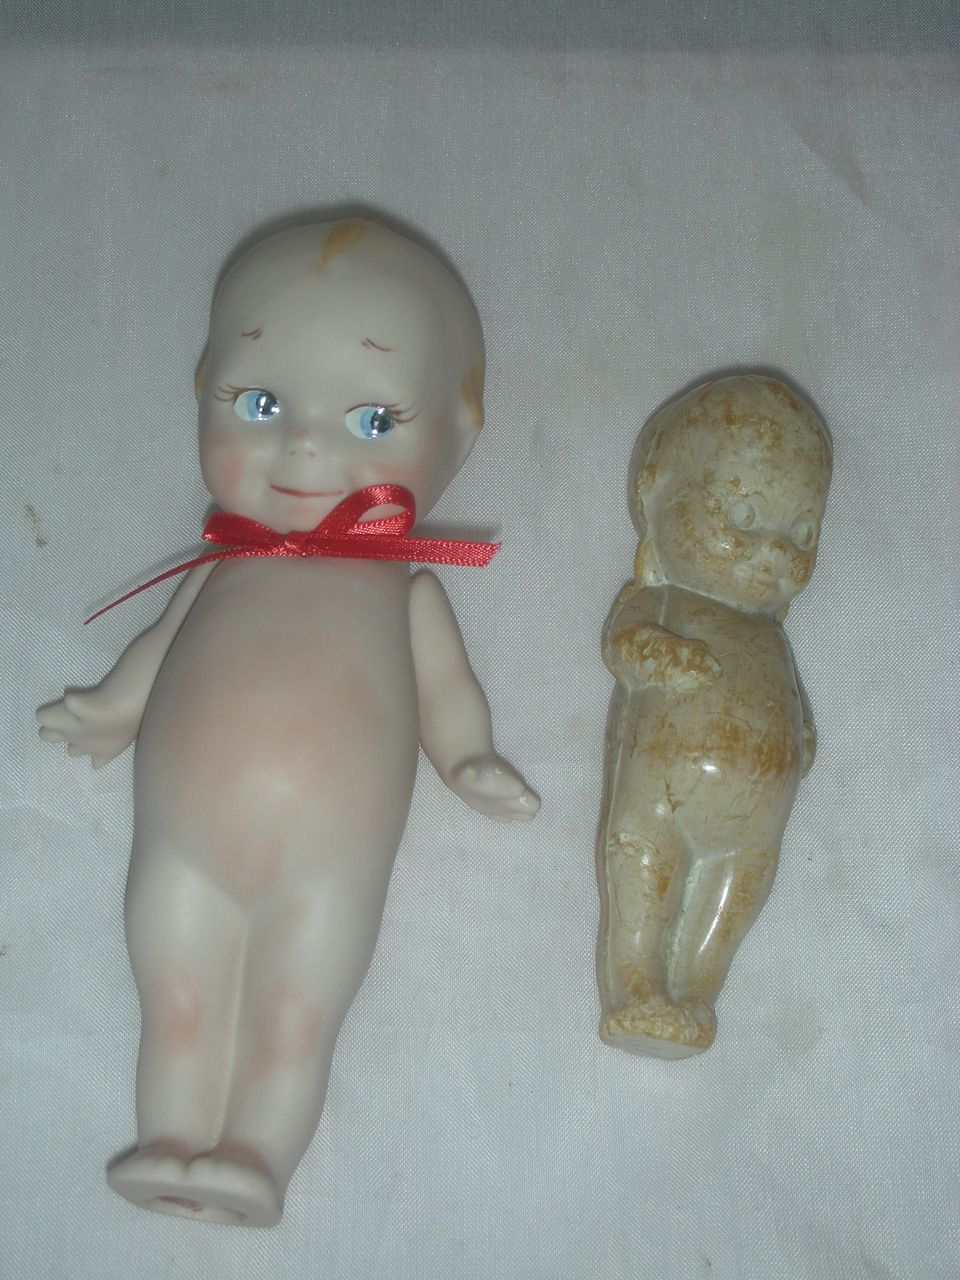 Vintage Kewpie Doll Soap and Jointed Bisque Artist Kewpie Doll